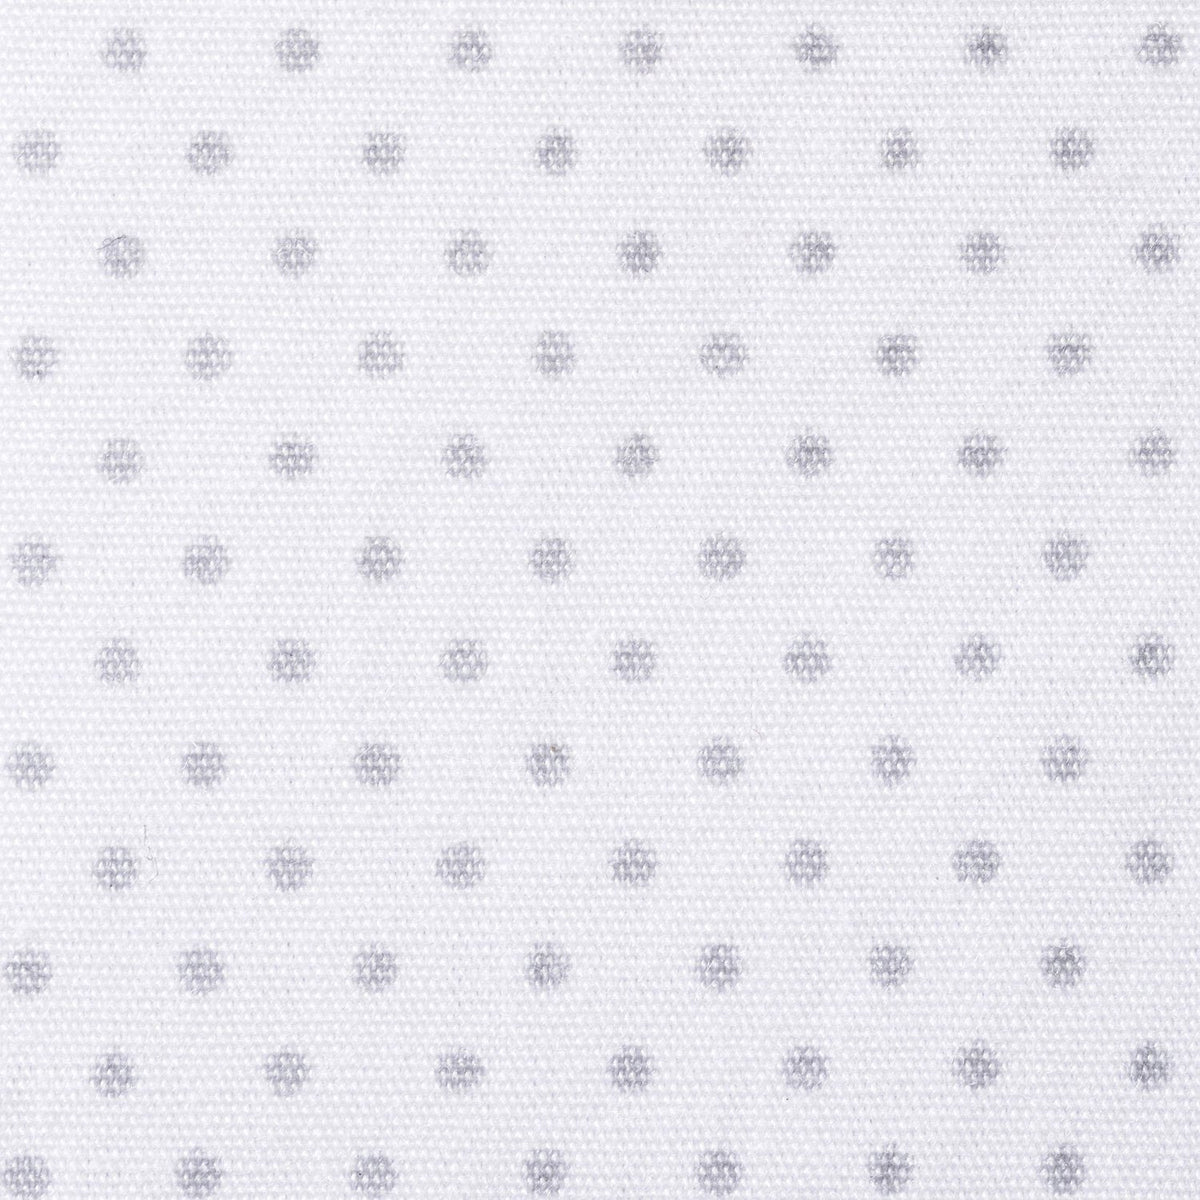 Halo gray pin dot bassinest fitted sheet